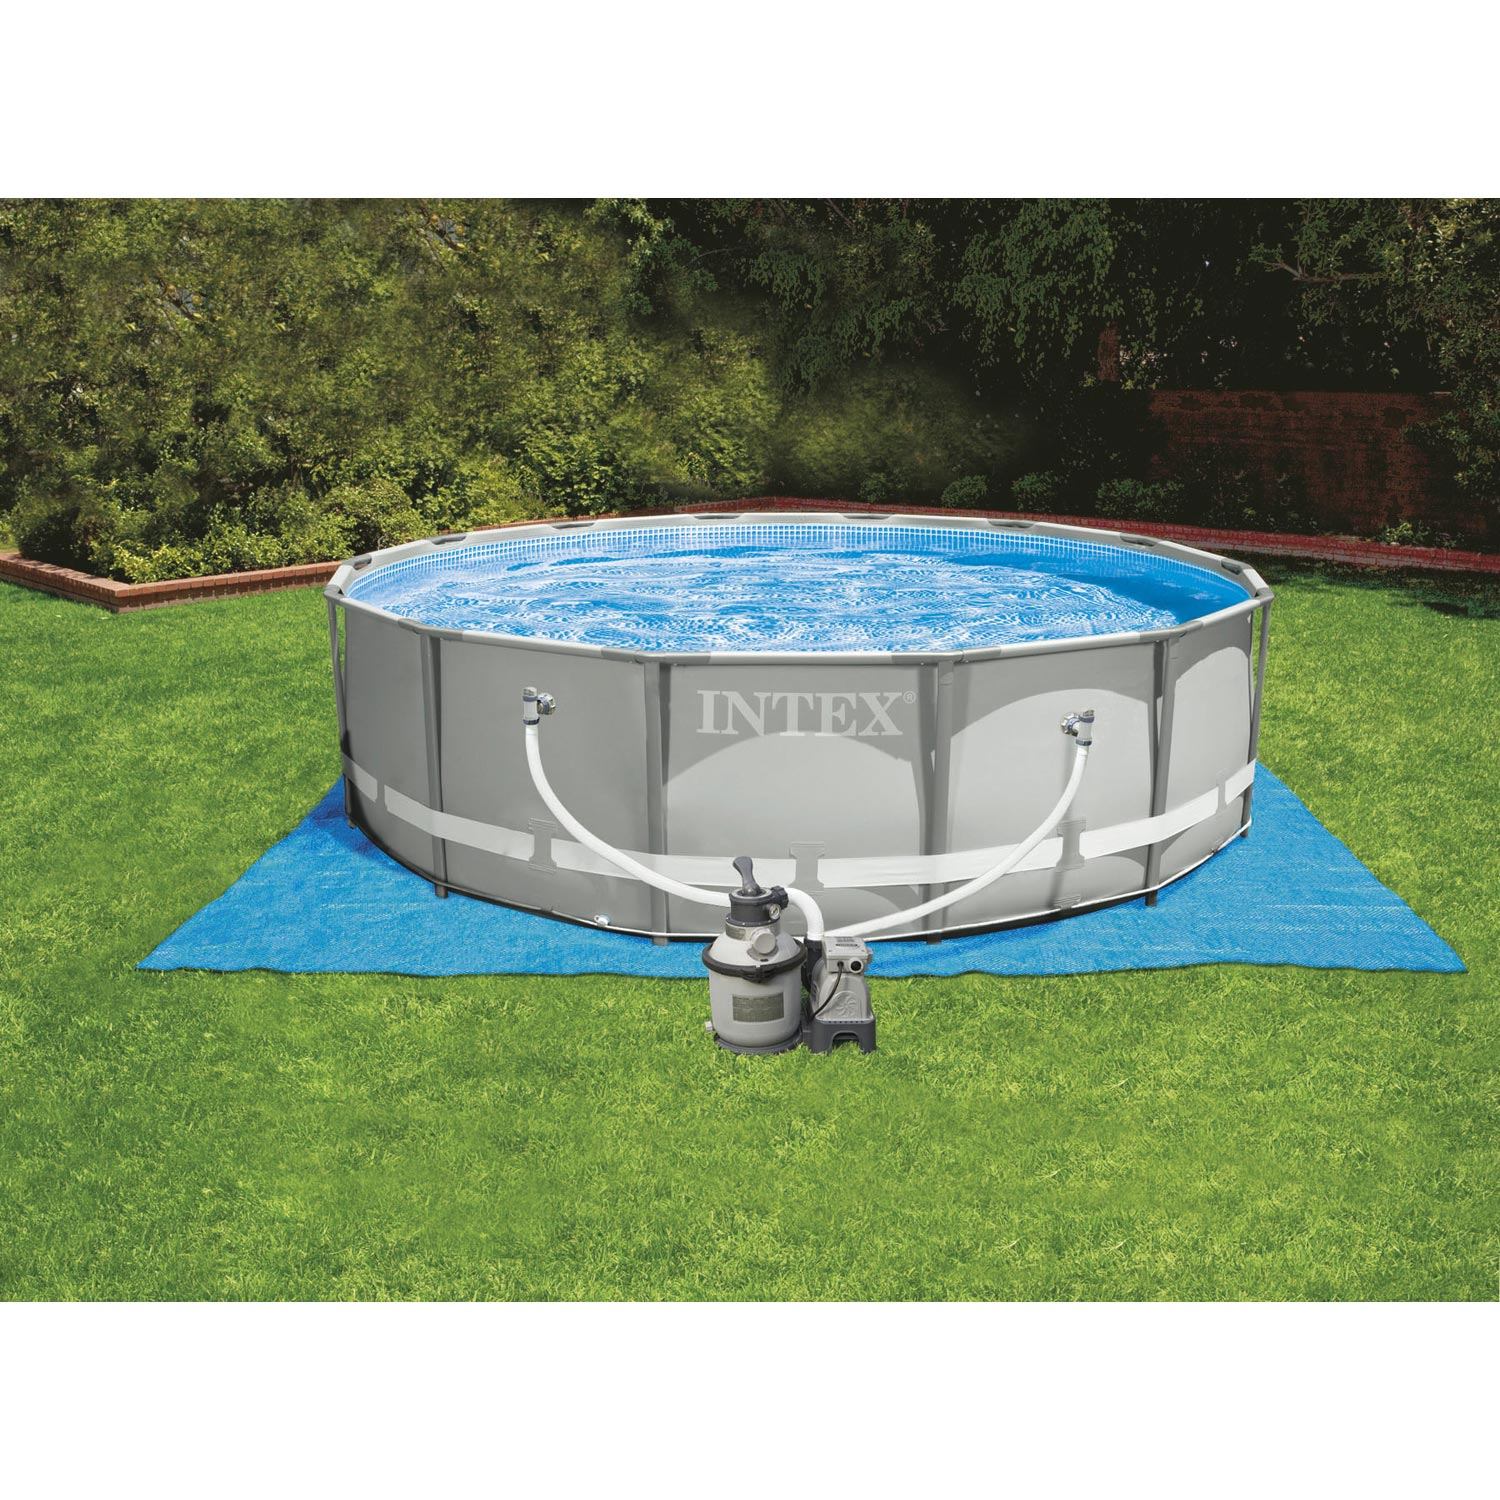 Piscine hors sol autoportante tubulaire ultra frame intex for Piscine 3 boudins intex